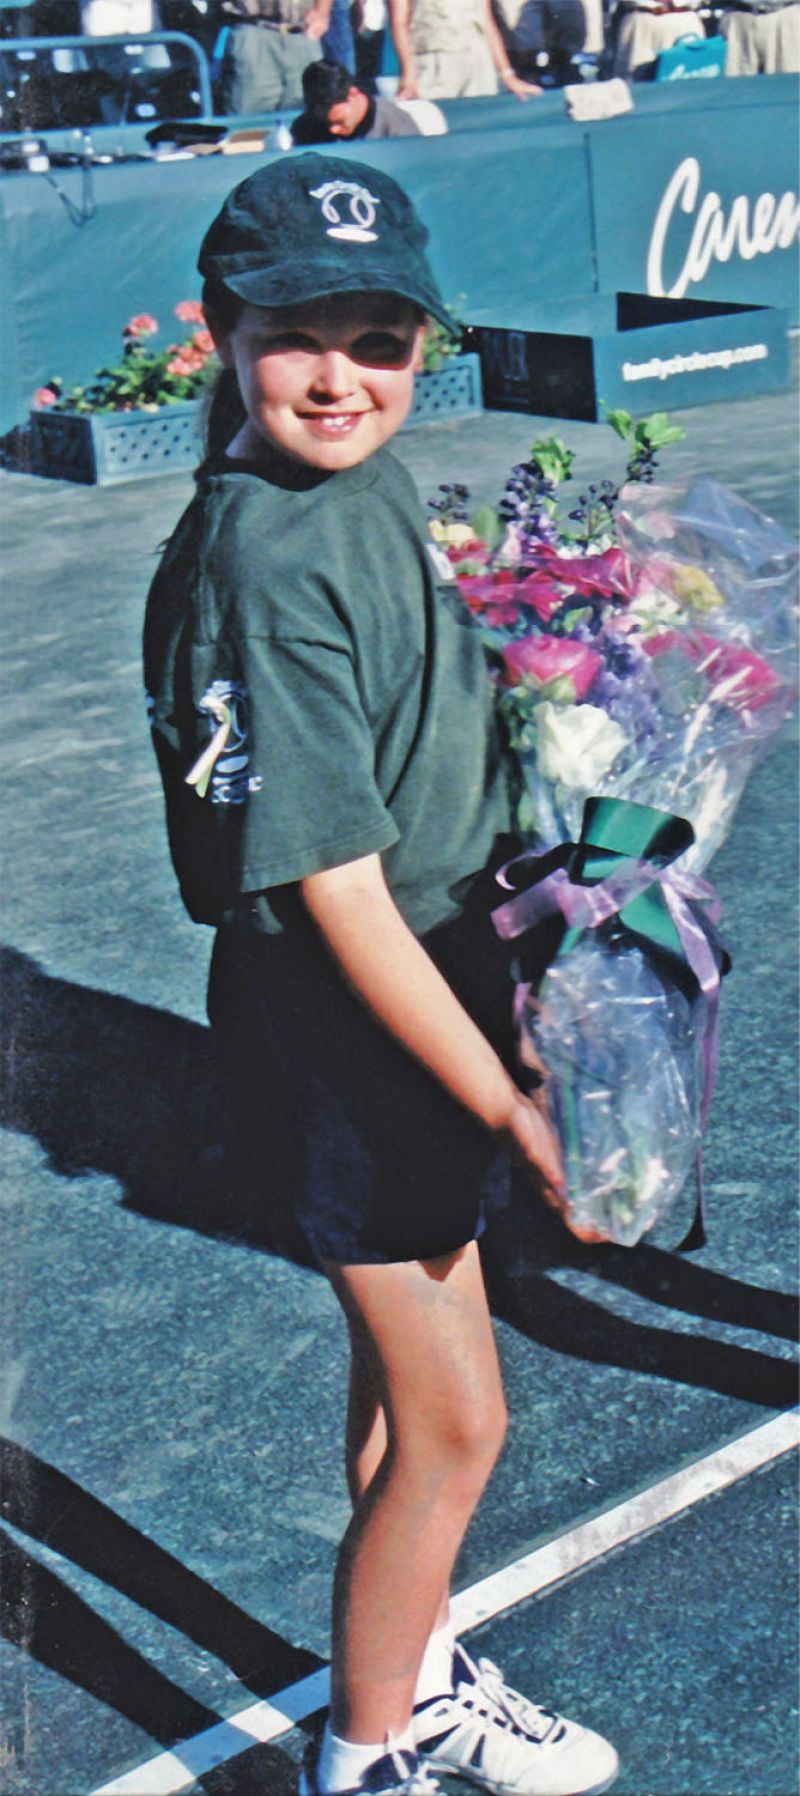 In 2001, as an eight-year-old ball crew member, Rogers was chosen to hand a bouquet to 2001 Family Circle Cup champion Jennifer Capriati.